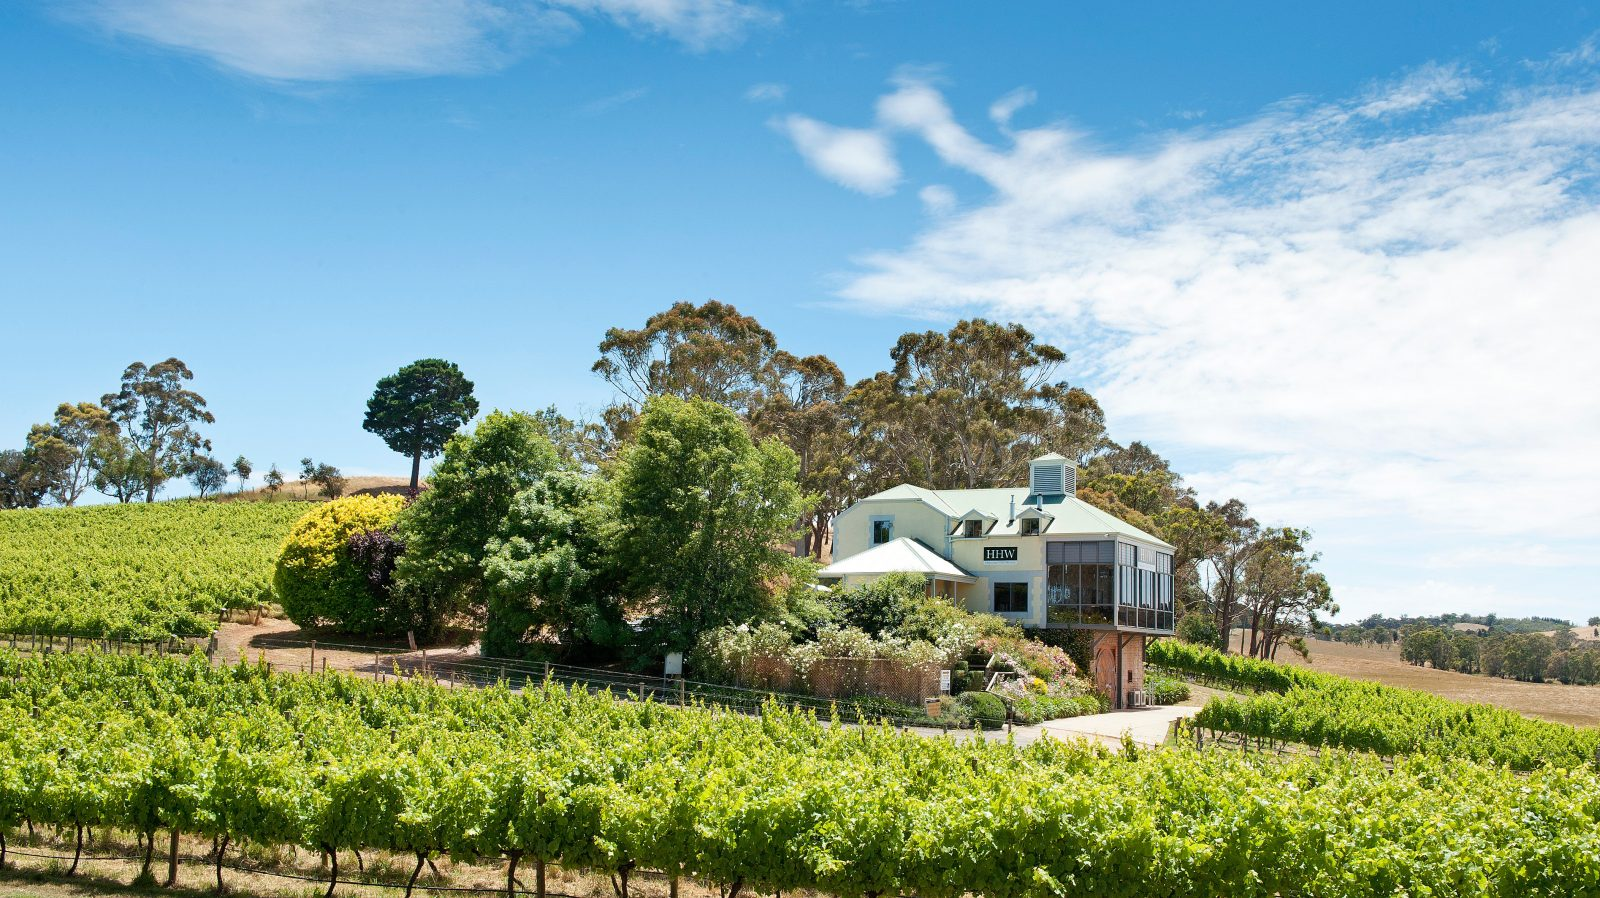 Hahndorf Hill Winery Adelaide Hills Cellar door Springtime